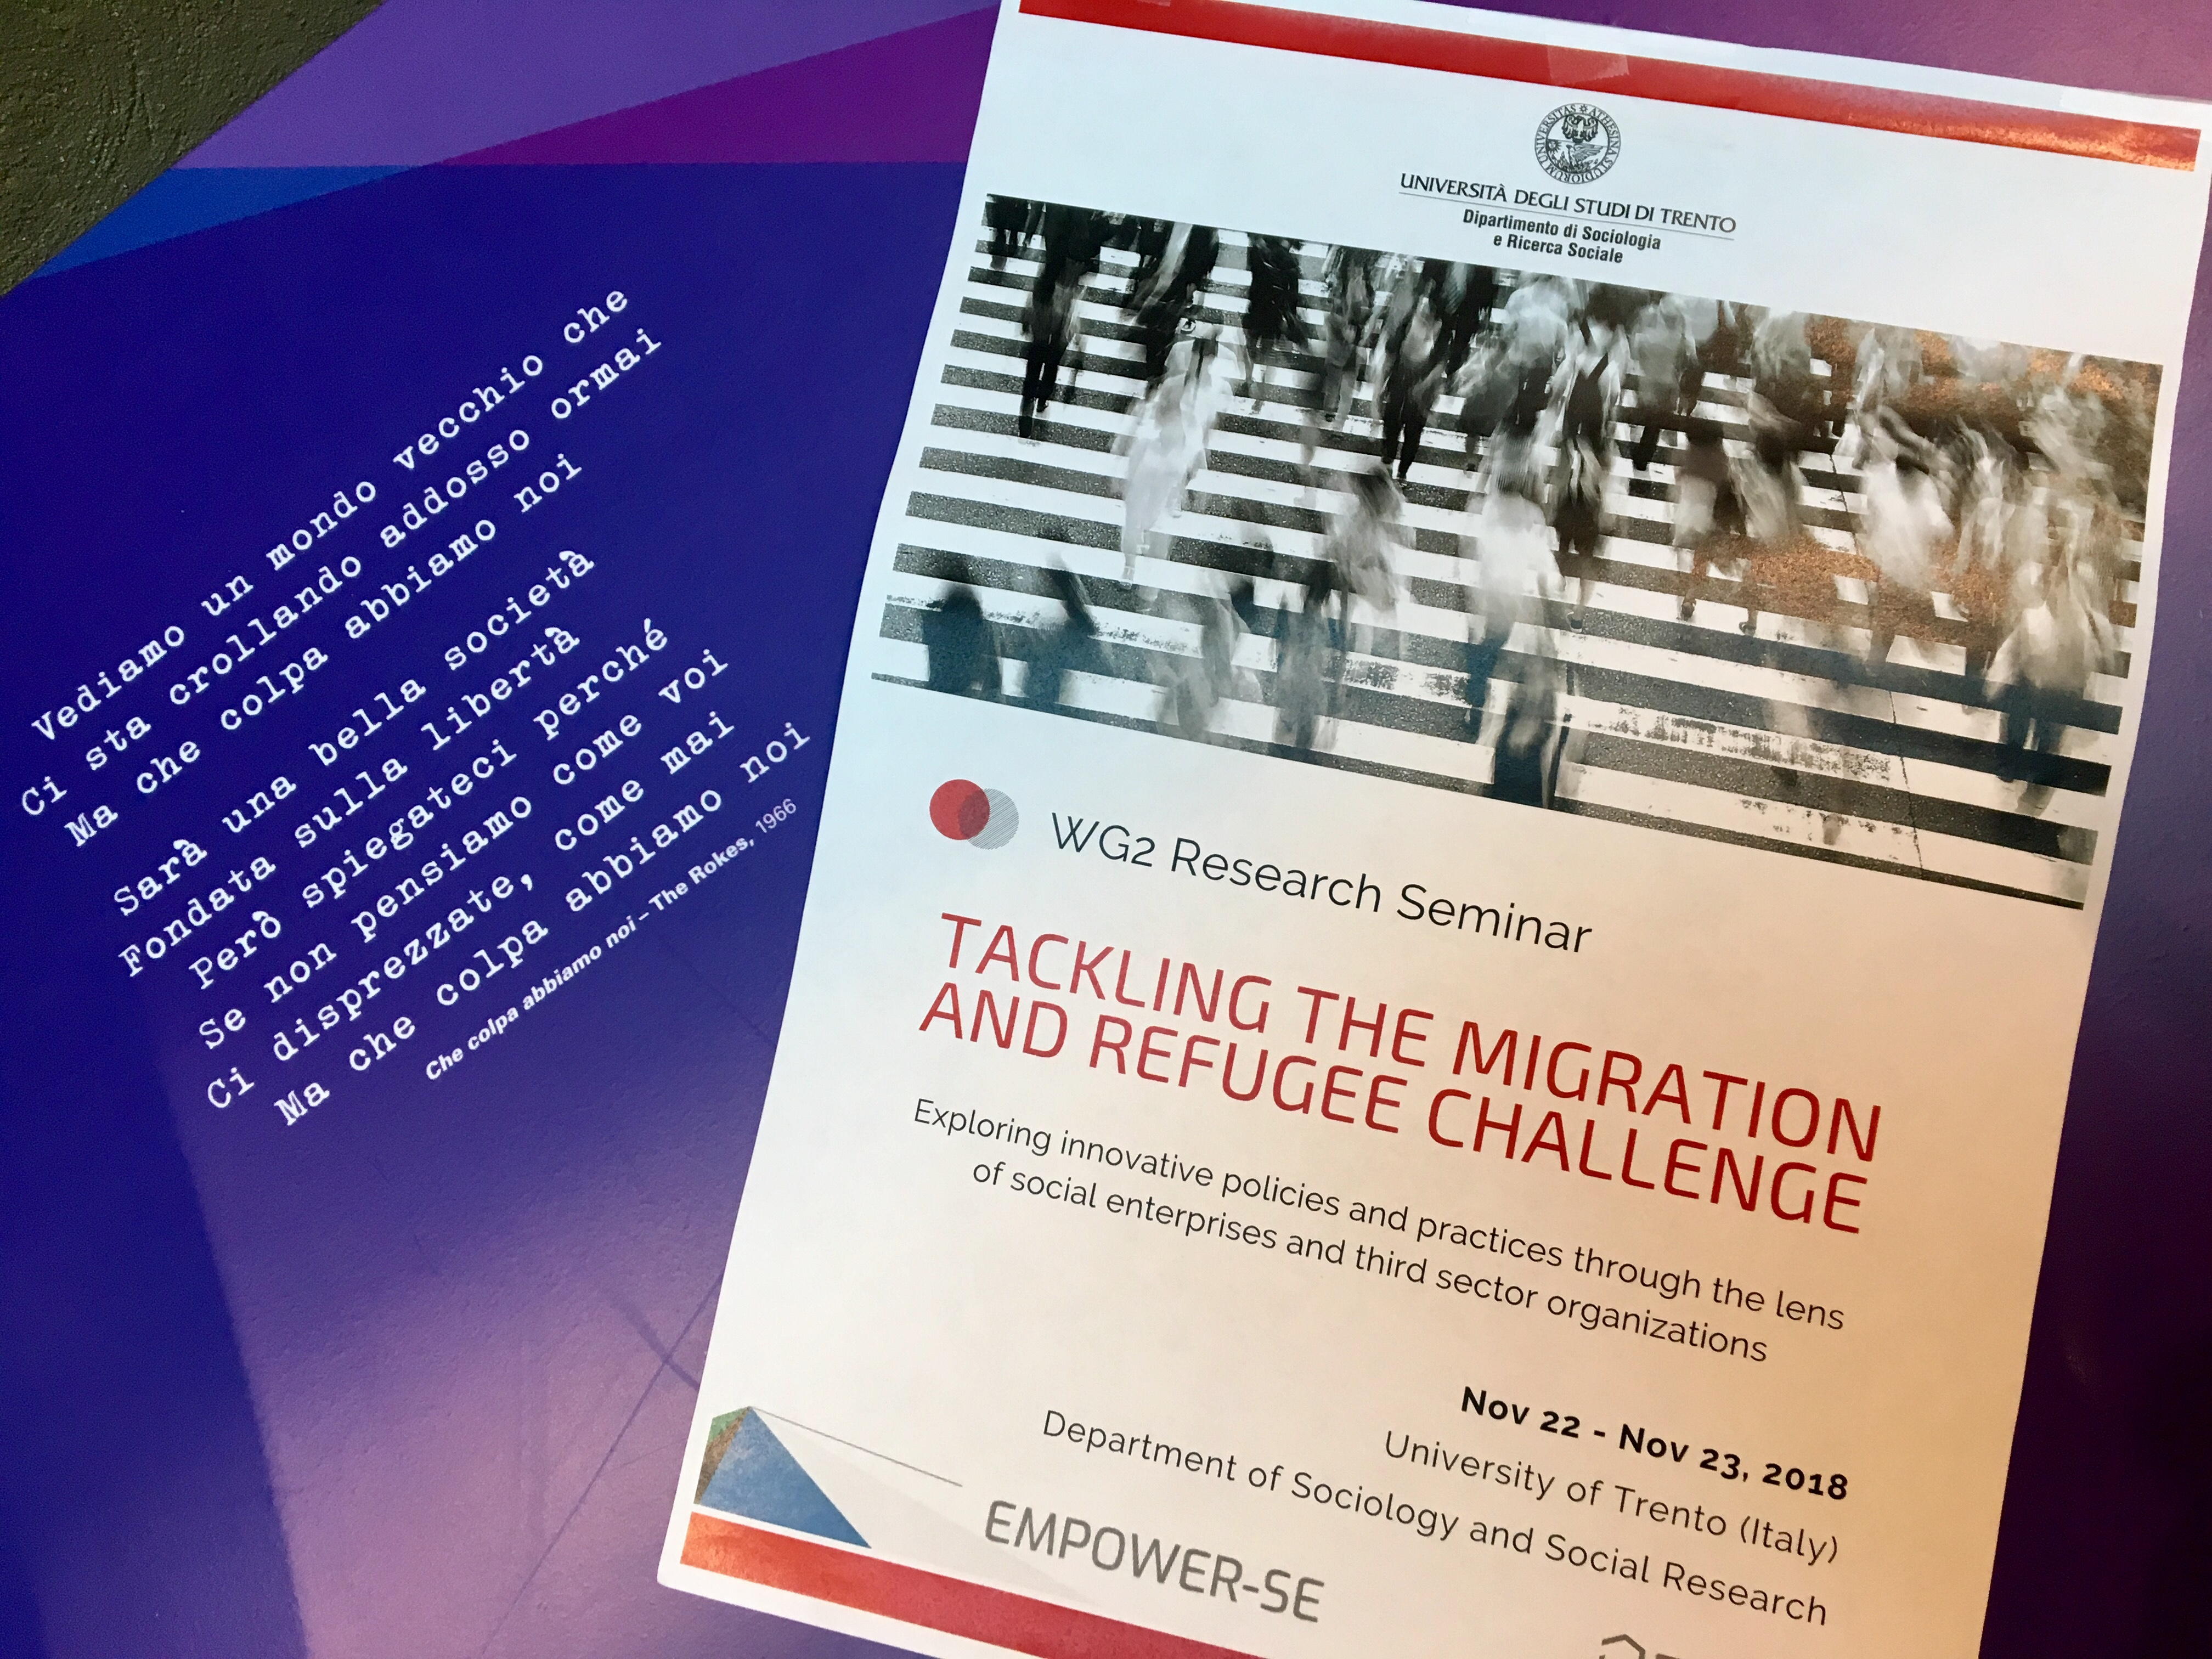 Sharing practices and approaches to tackle the migration and refugee challenge in Europe